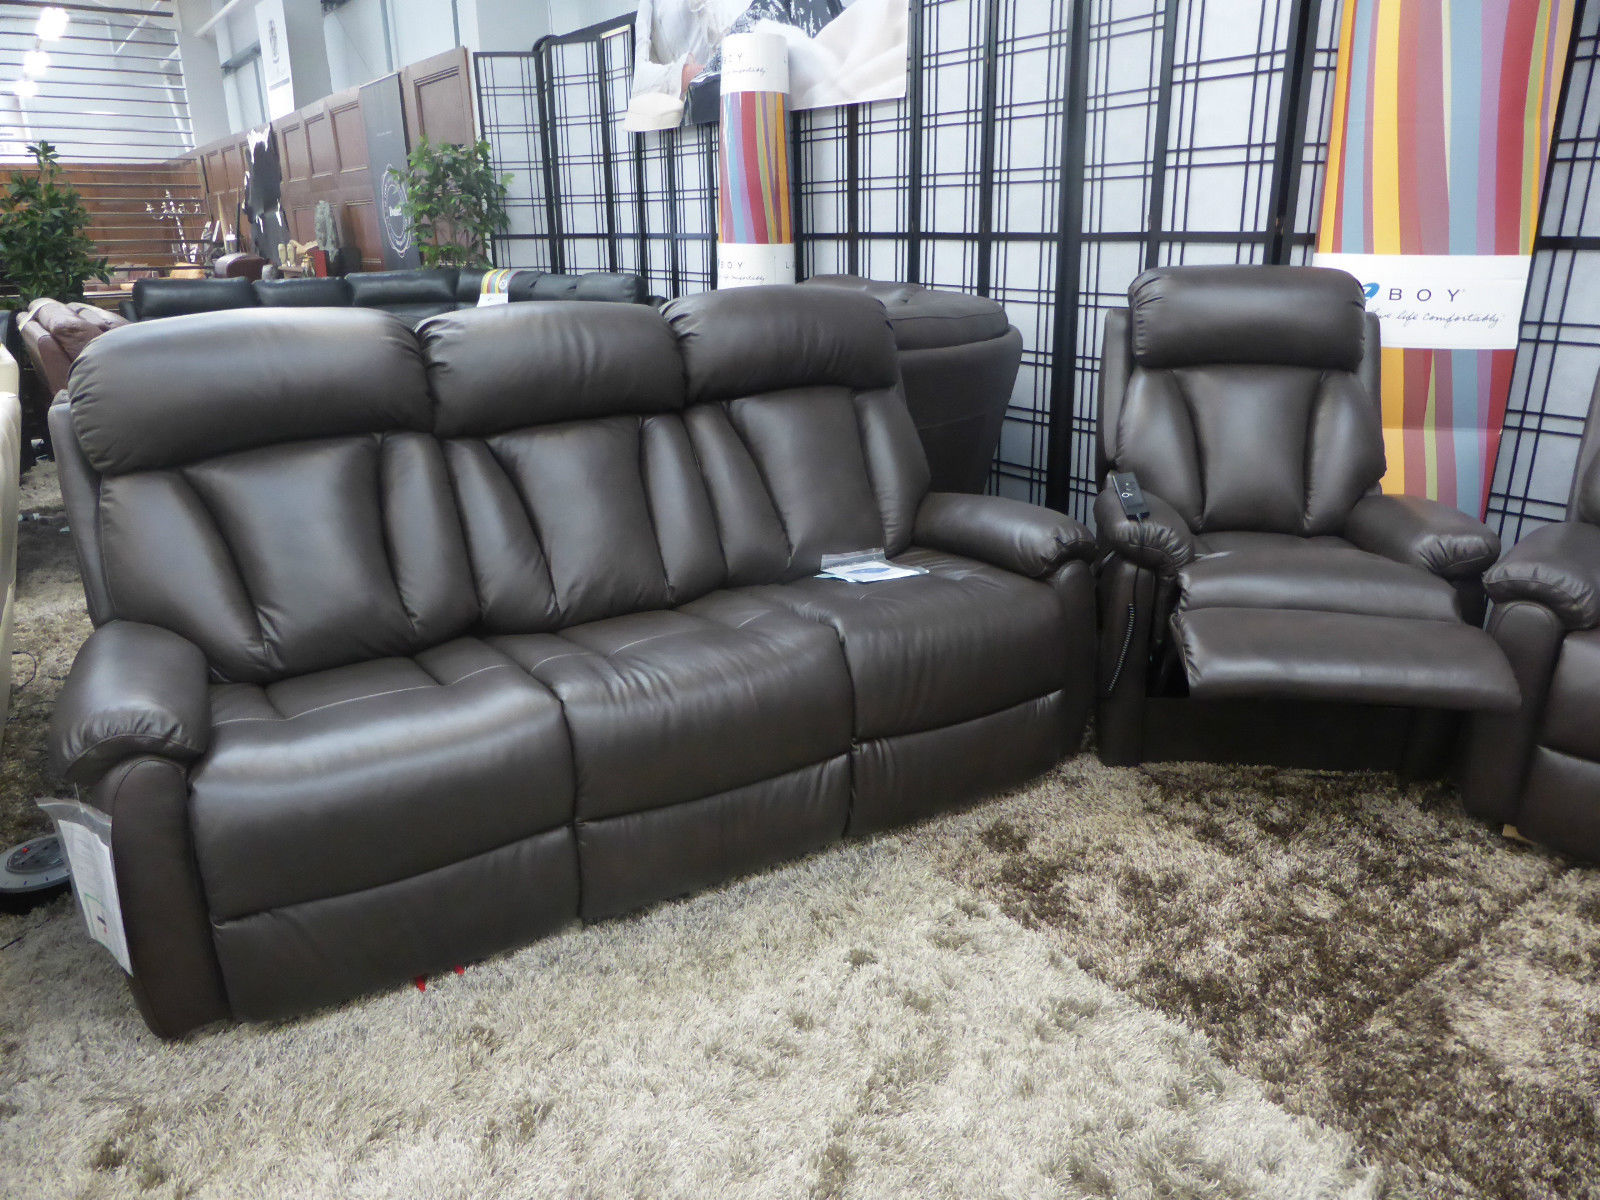 LAZY BOY GEORGIA BROWN 3 SEATER AND RISE AND RECLINER ...